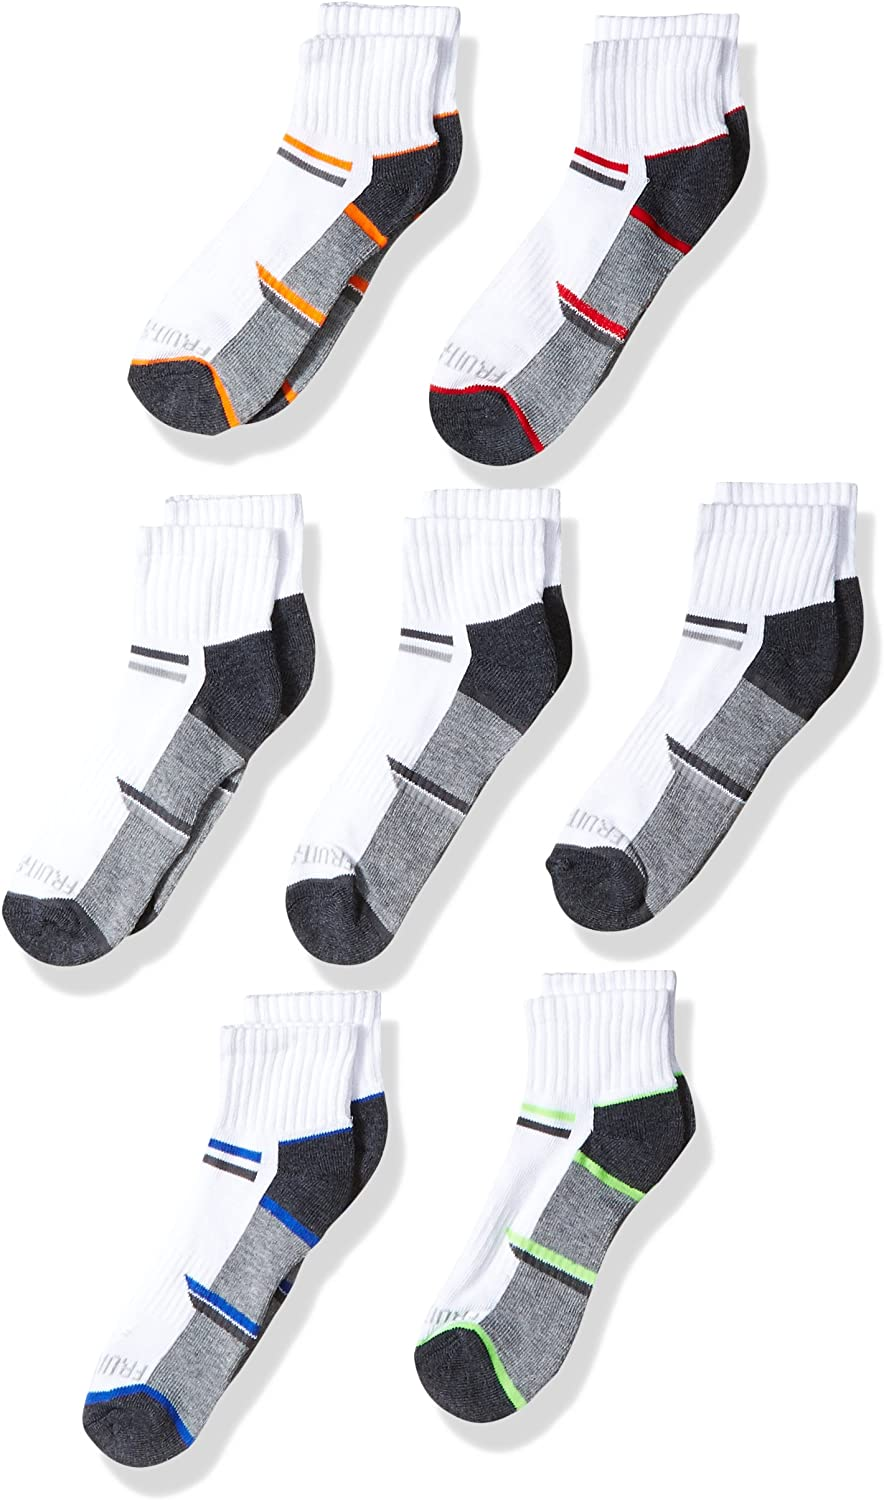 Fruit of the Loom Boys' 7 Pack Everyday Active Ankle Socks